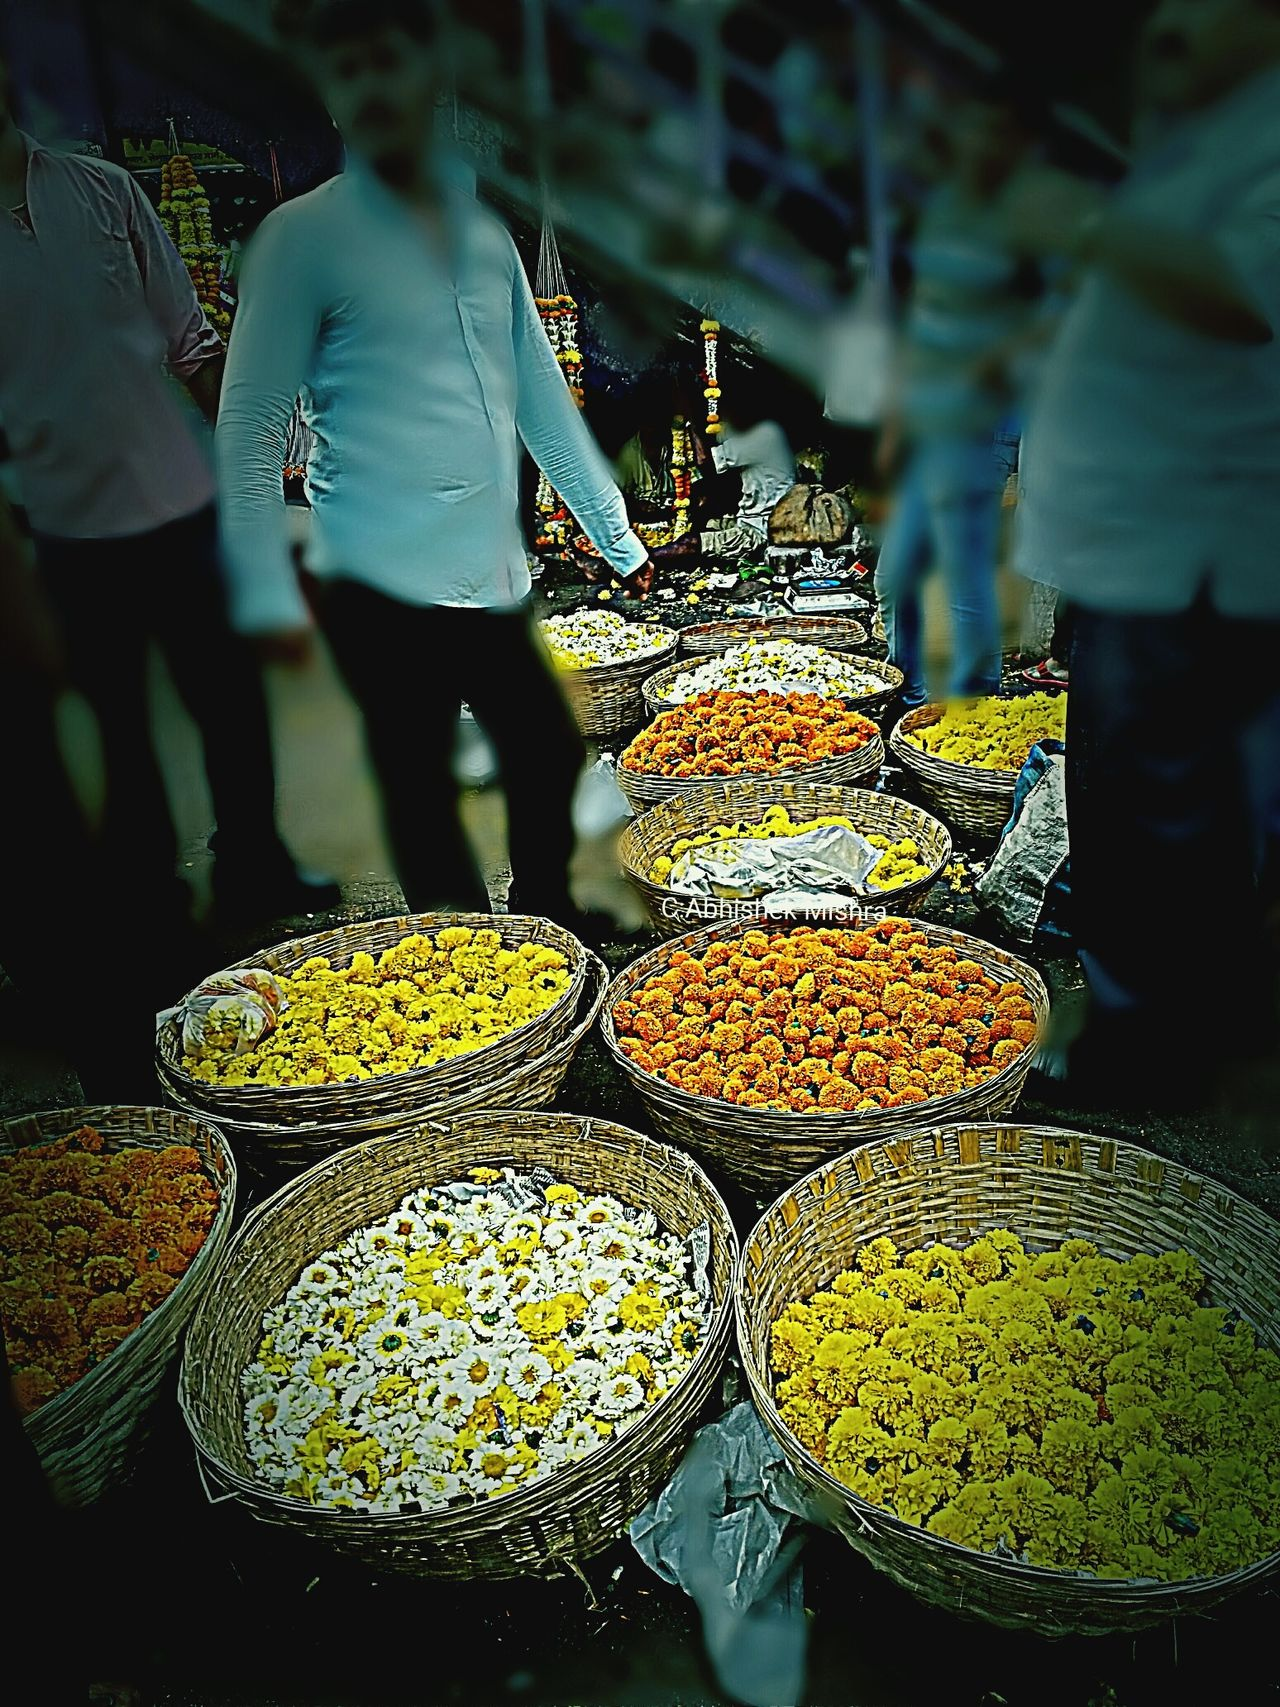 MumbaiDiaries Mumbaimerijaan Streetphotography Flowers_collection Learning Photography Alone In The City  Busy Street Mumbaistreets Business Street Photography BusyRoads Roadsidephotography Indianroads Marketplace Market Stall Marketstreet Market Colors Here Belongs To Me